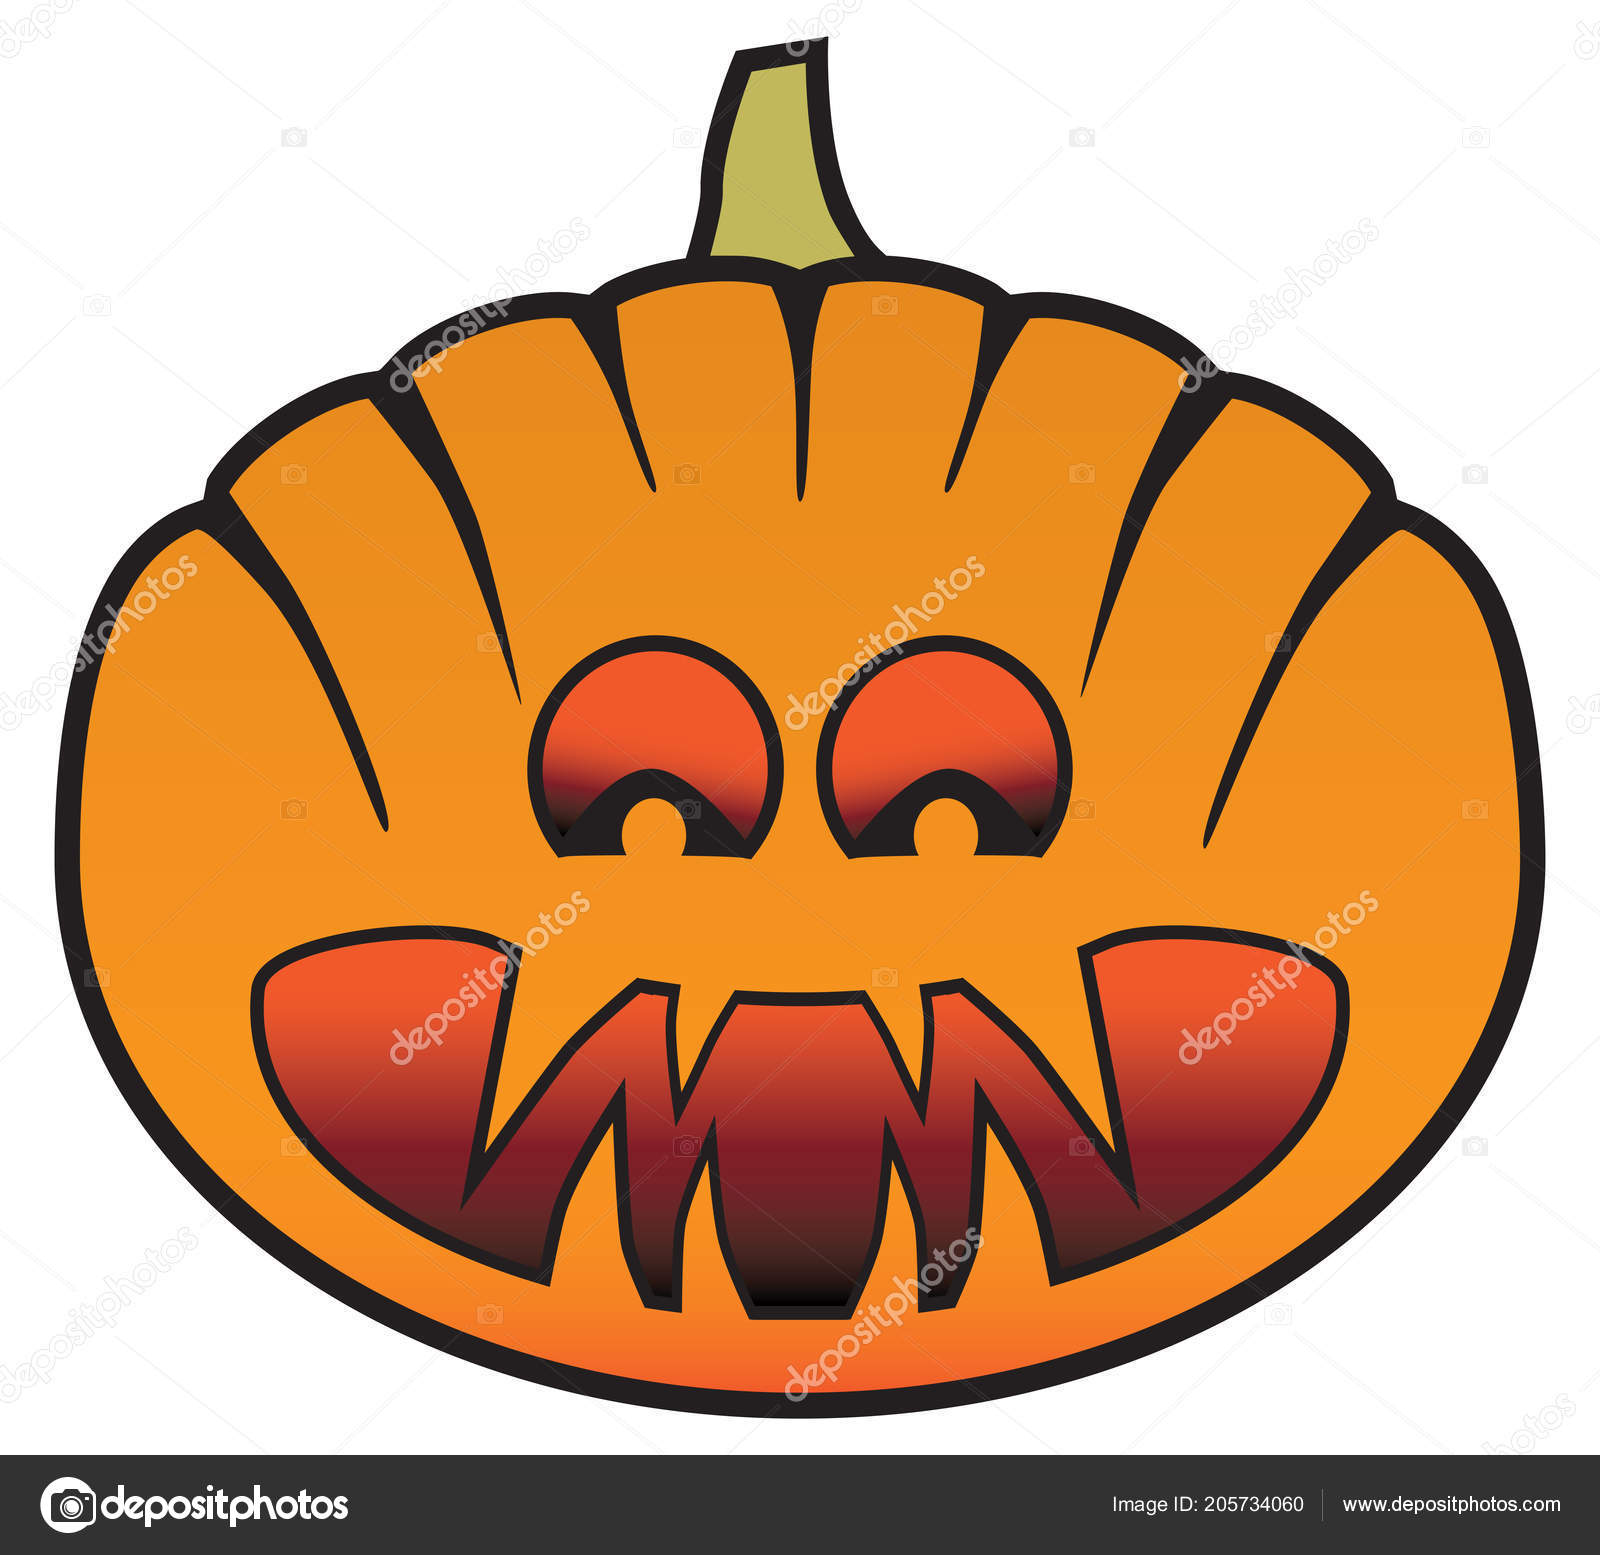 A Sinister Halloween Carved Pumpkin With Glowing Eyes And Scary